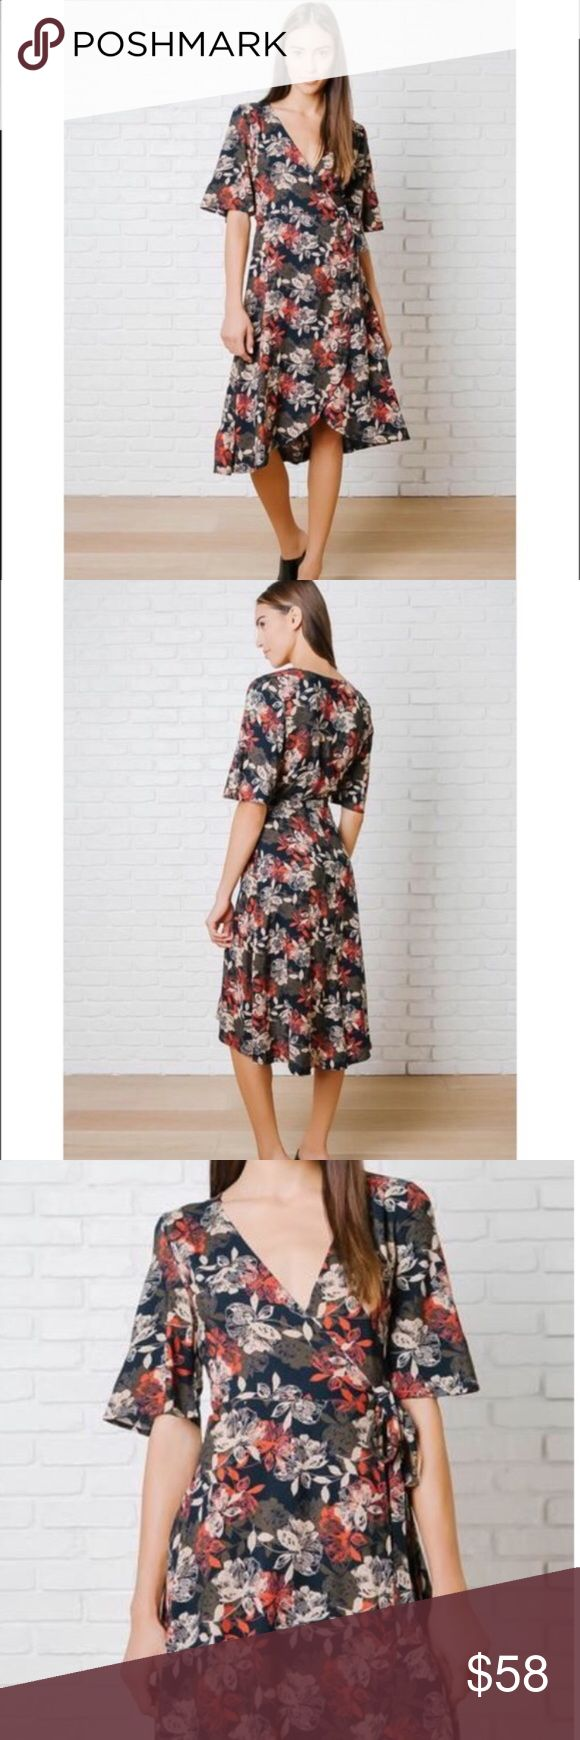 "🆕Sophisticated style wrap dress ❤️ A sophisticated style for your wardrobe. This navy-hued frock is patterned w/a floral design in cream, red,brown hues, & has a V-cut neckline for a flirty hint of skin.Its flowy sleeves add a playful vibe, & it features an adjustable tie @ the waist for the perfect fit. It is finished w/a slightly asymmetrical hemline.100% Rayon Measurements 36"" bust 39"" from top of shoulder (to shortest point) 45"" from top of shoulder (to longest point) Model Stats…"